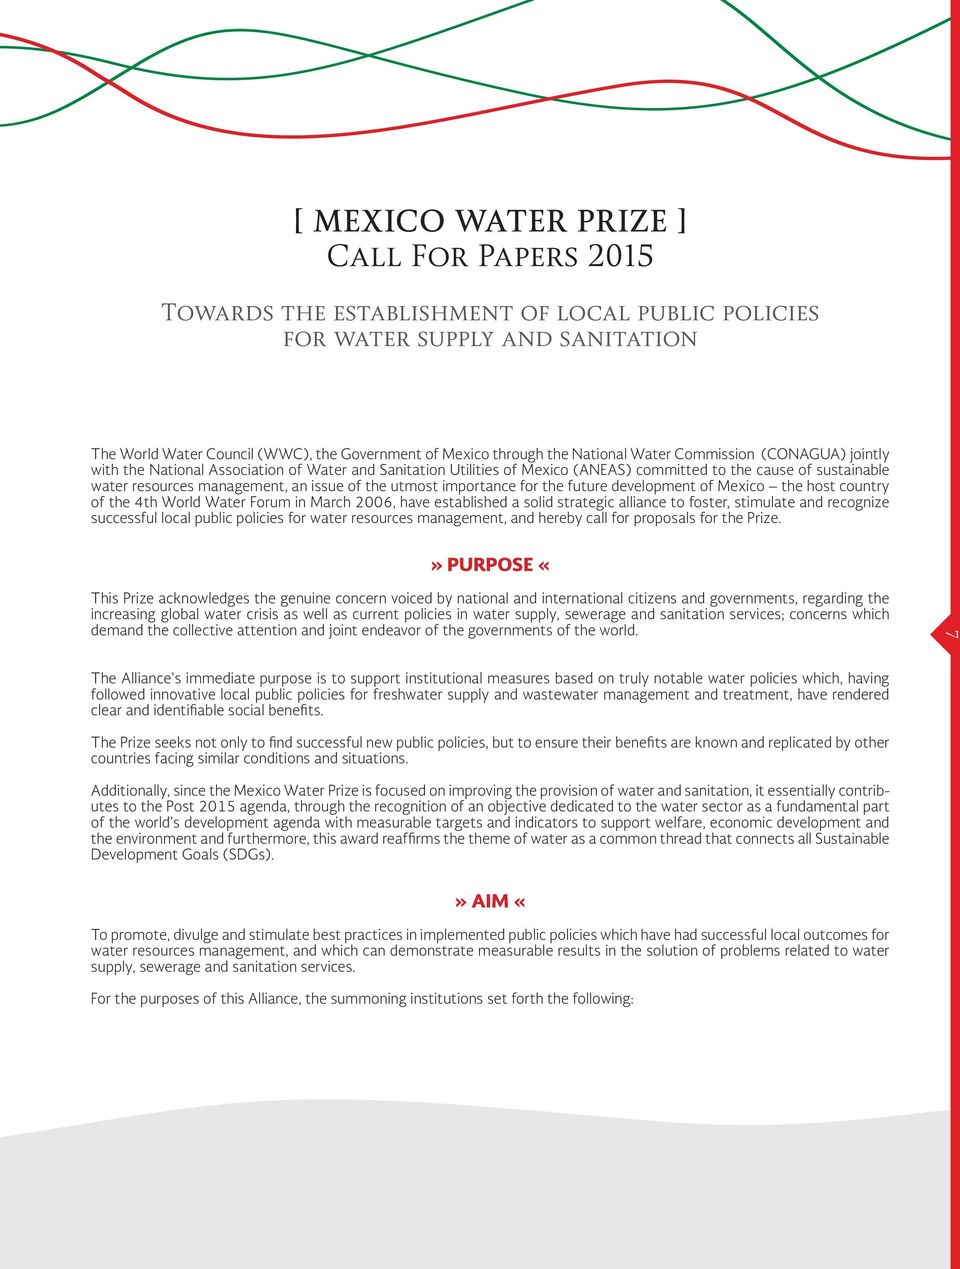 4th World Water Forum in March 2006, have established a solid strategic alliance to foster, stimulate and recognize successful local public policies for water resources management, and hereby call